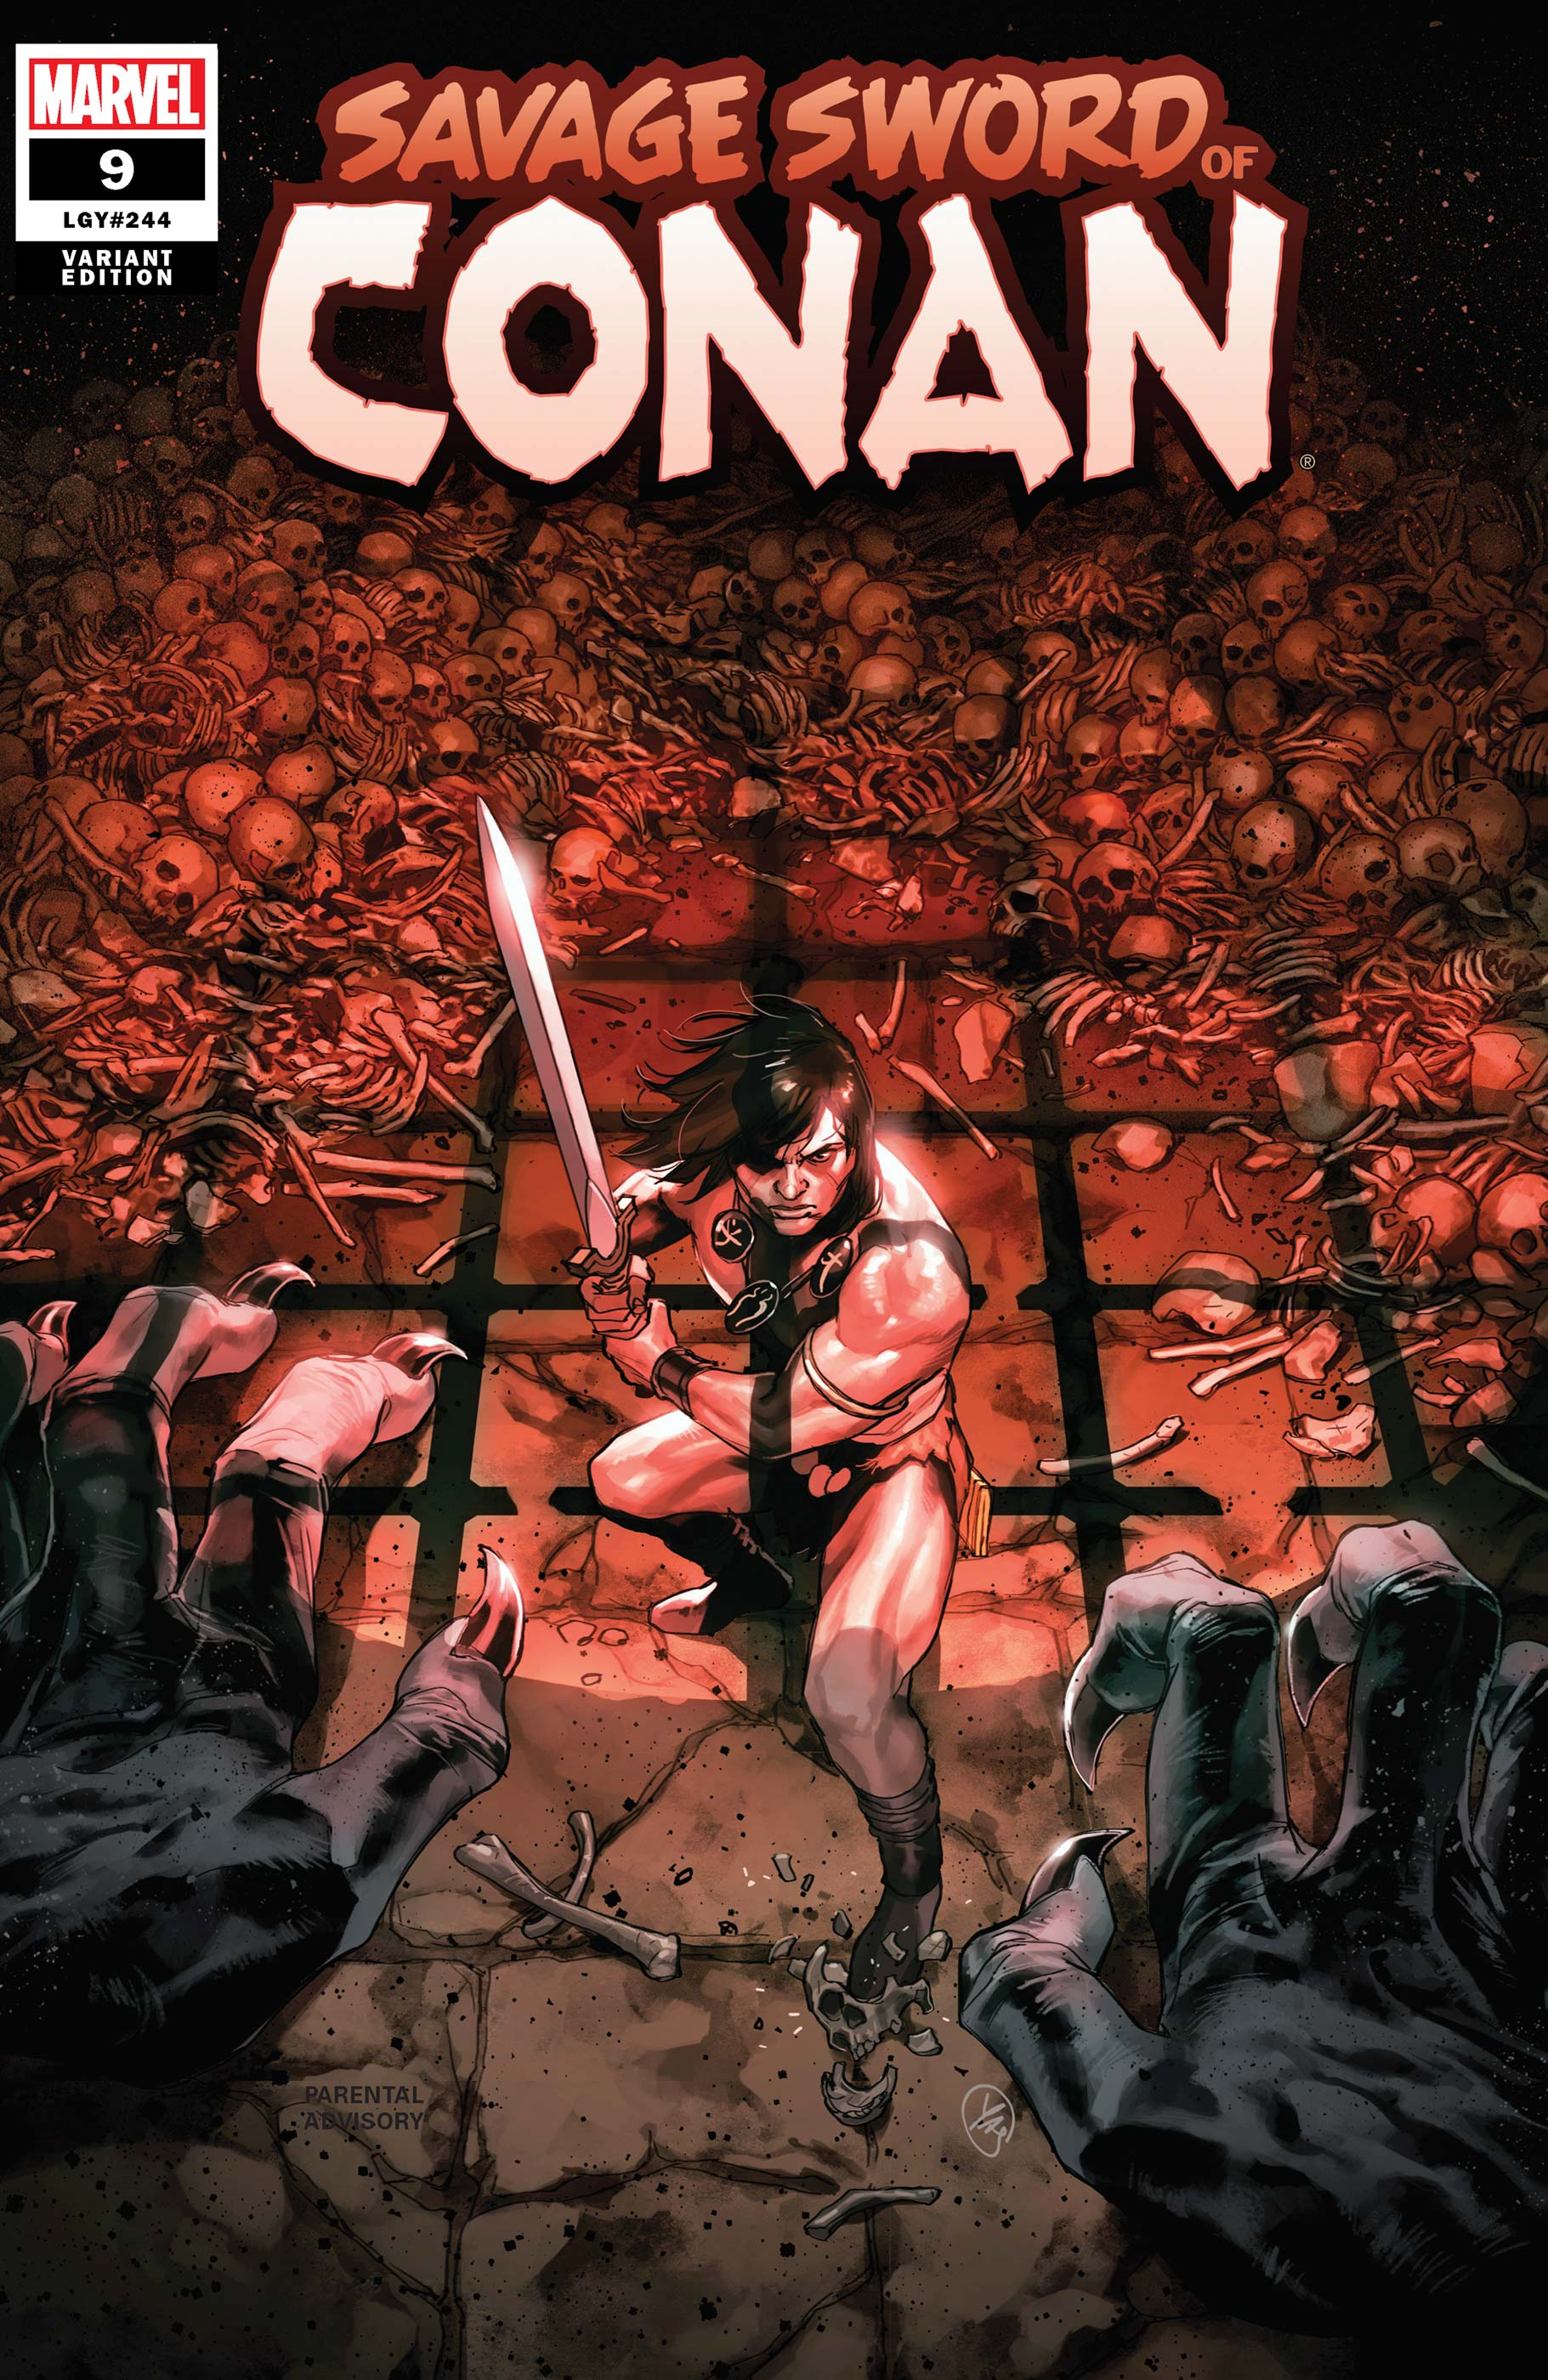 Savage Sword of Conan (2019) #9 (Variant)